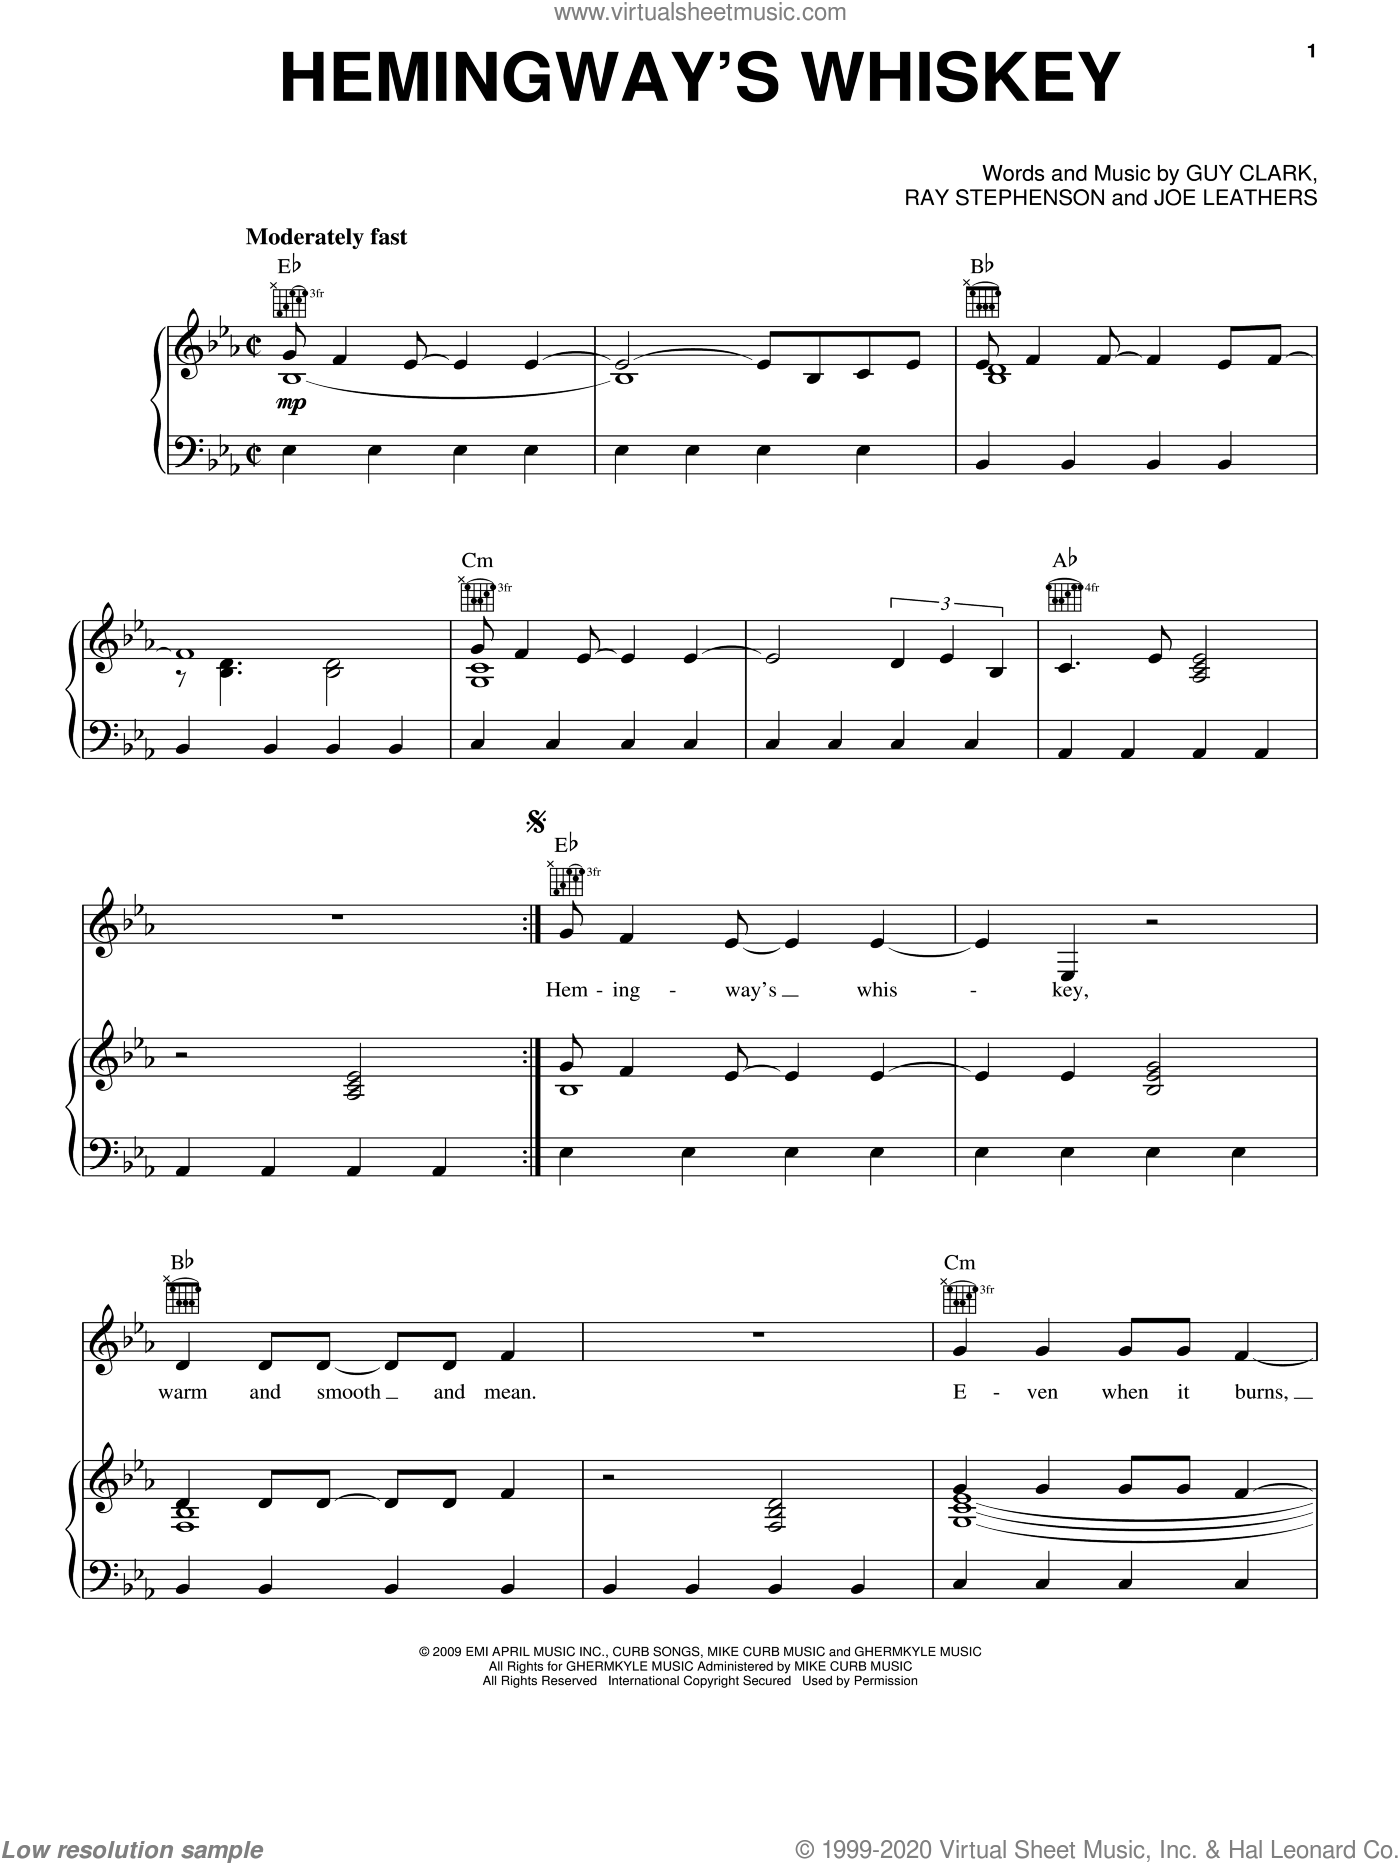 Hemingway's Whiskey sheet music for voice, piano or guitar by Kenny Chesney, Guy Clark, Joe Leathers and Ray Stephenson, intermediate skill level